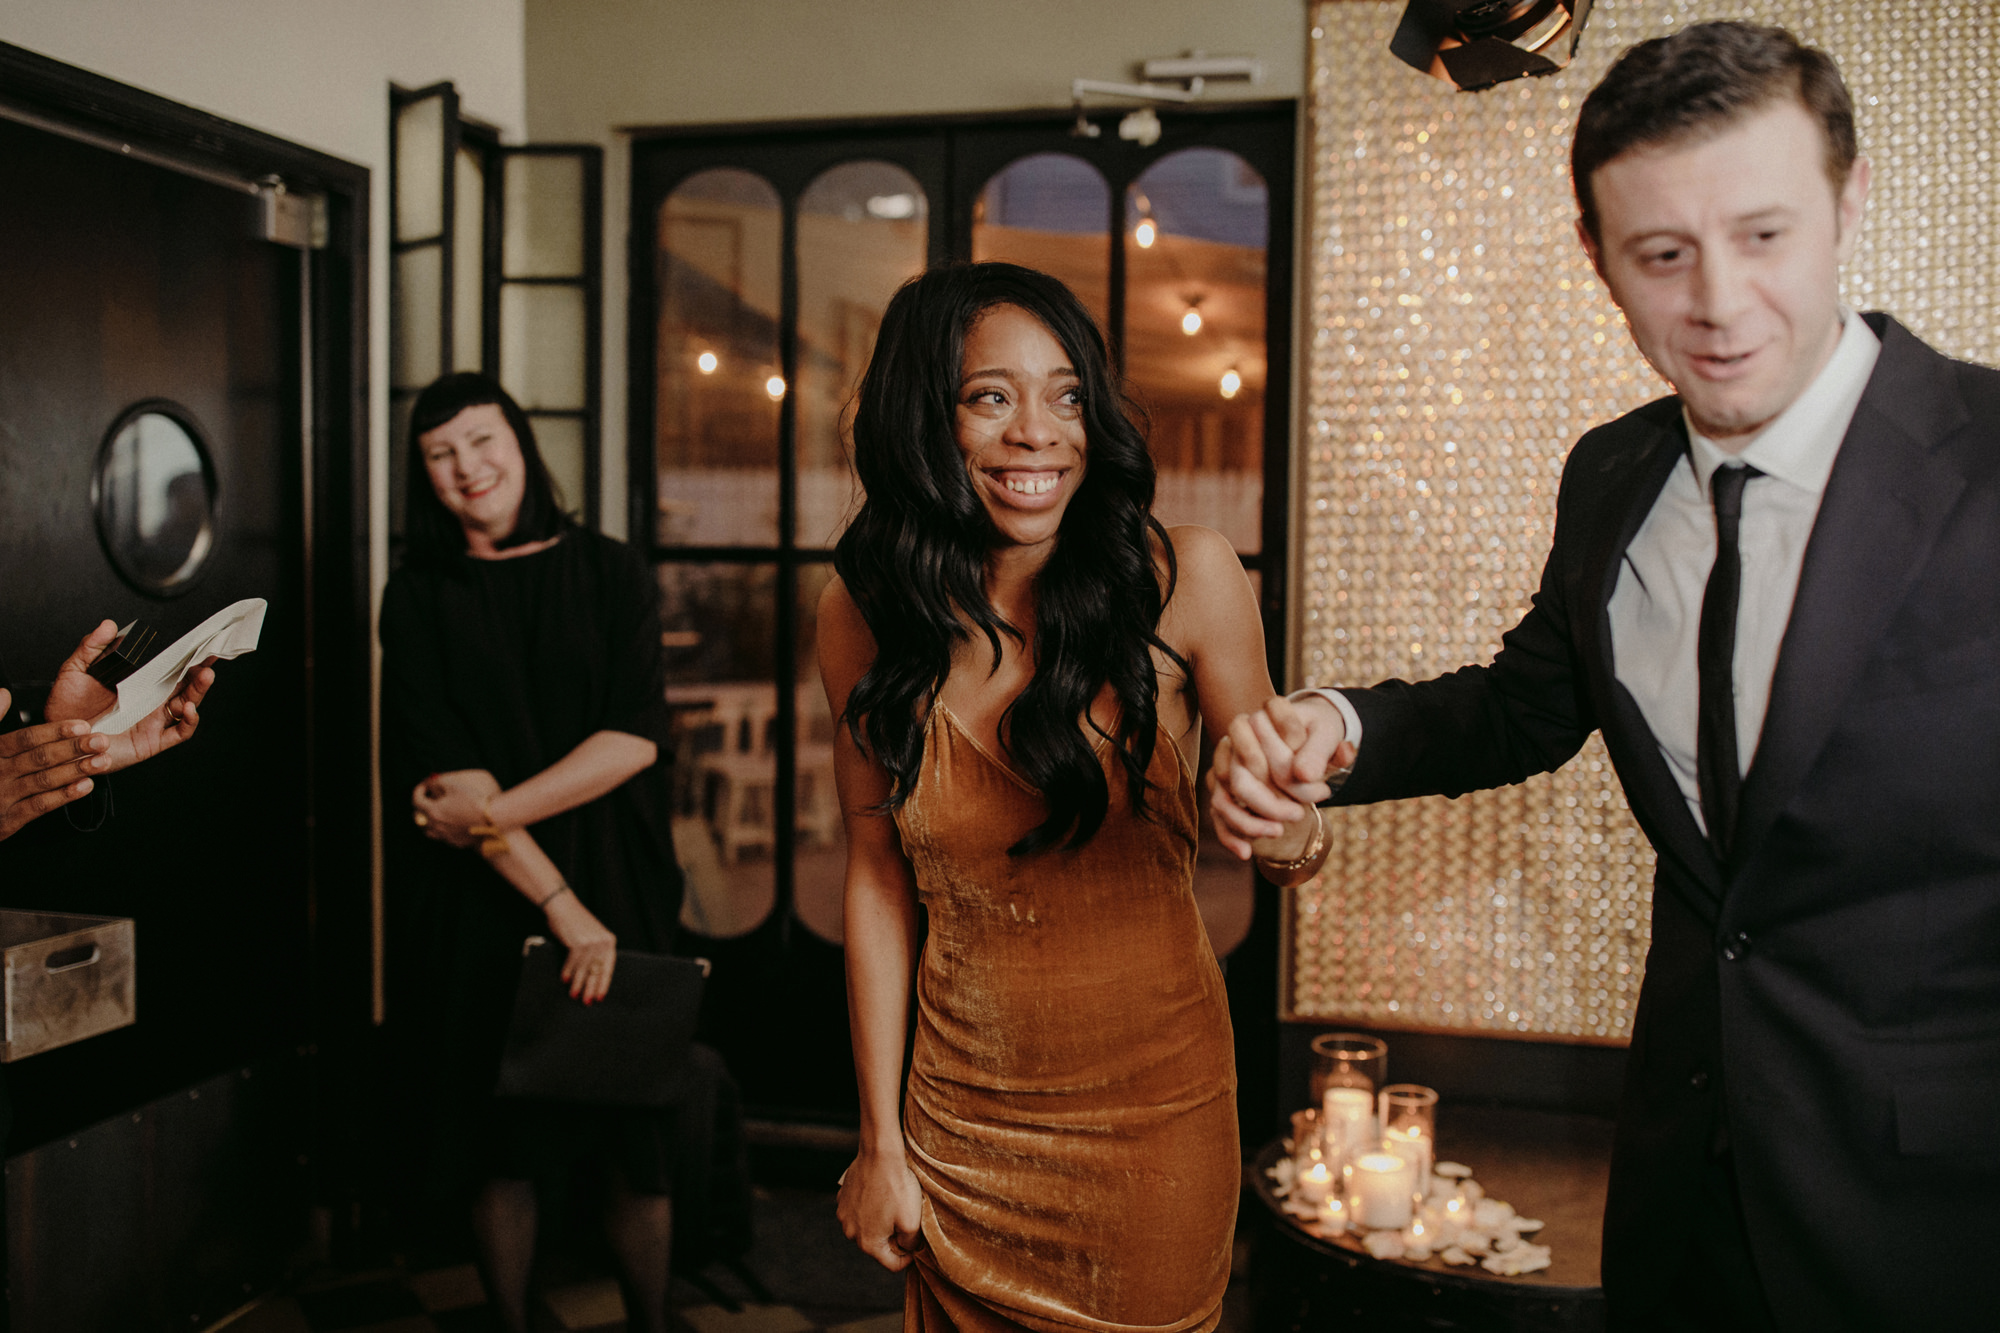 BROOKLYN_ELOPEMENT_SAMMBLAKE_NDE_526.jpg